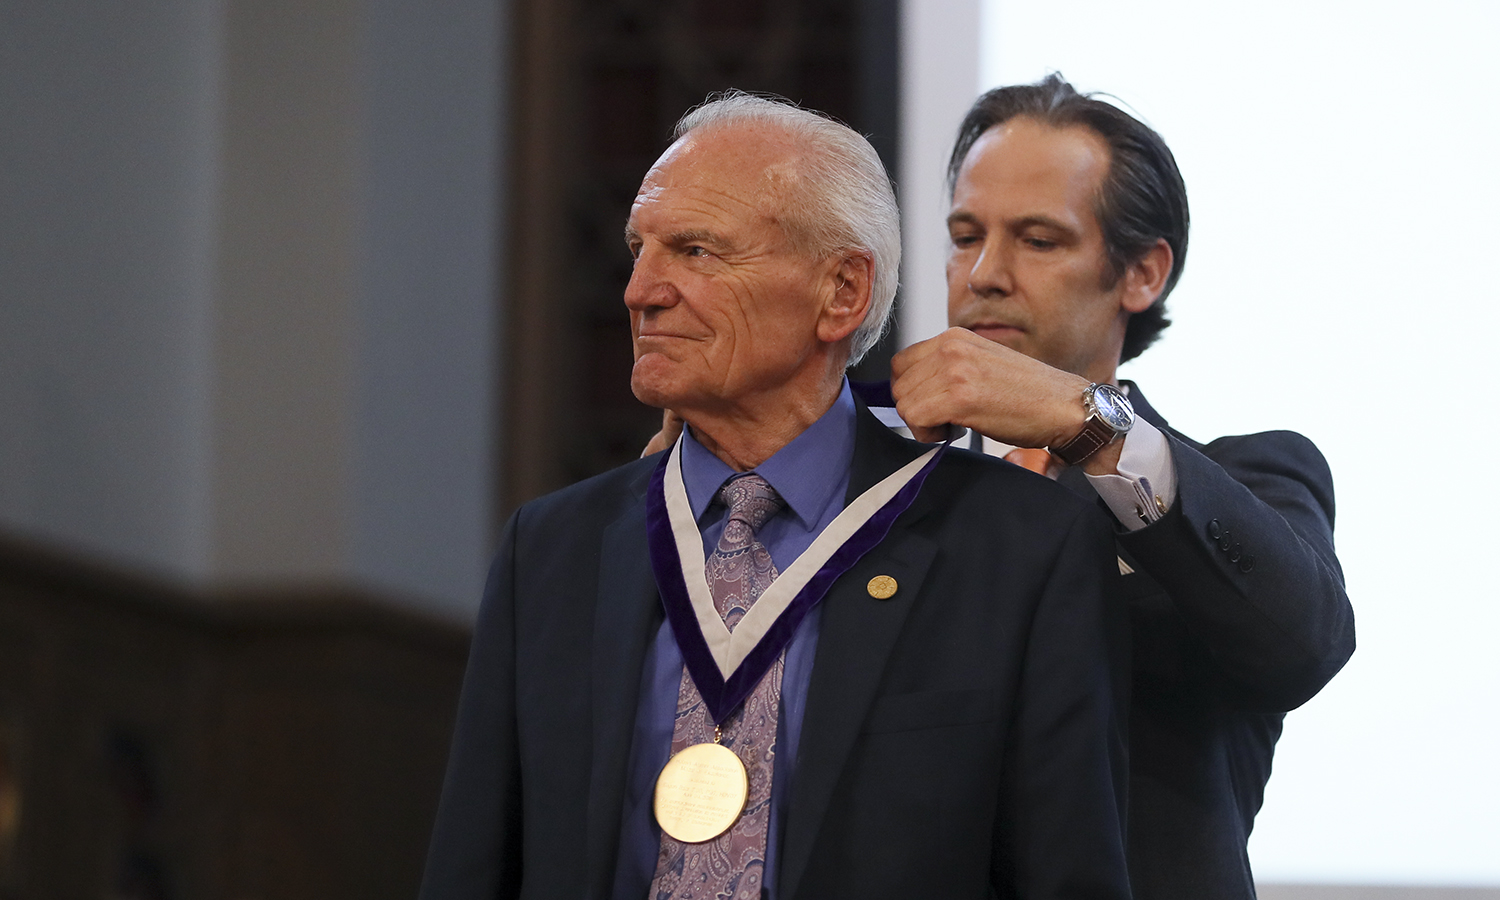 During Charter Day, Assistant Vice President for Advancement and Alumni Relations Jared Weeden '91 presents the Hobart Medal of Excellence to Hobart Dean and Professor of Philosophy Eugen Baer Pâ95, Pâ97.